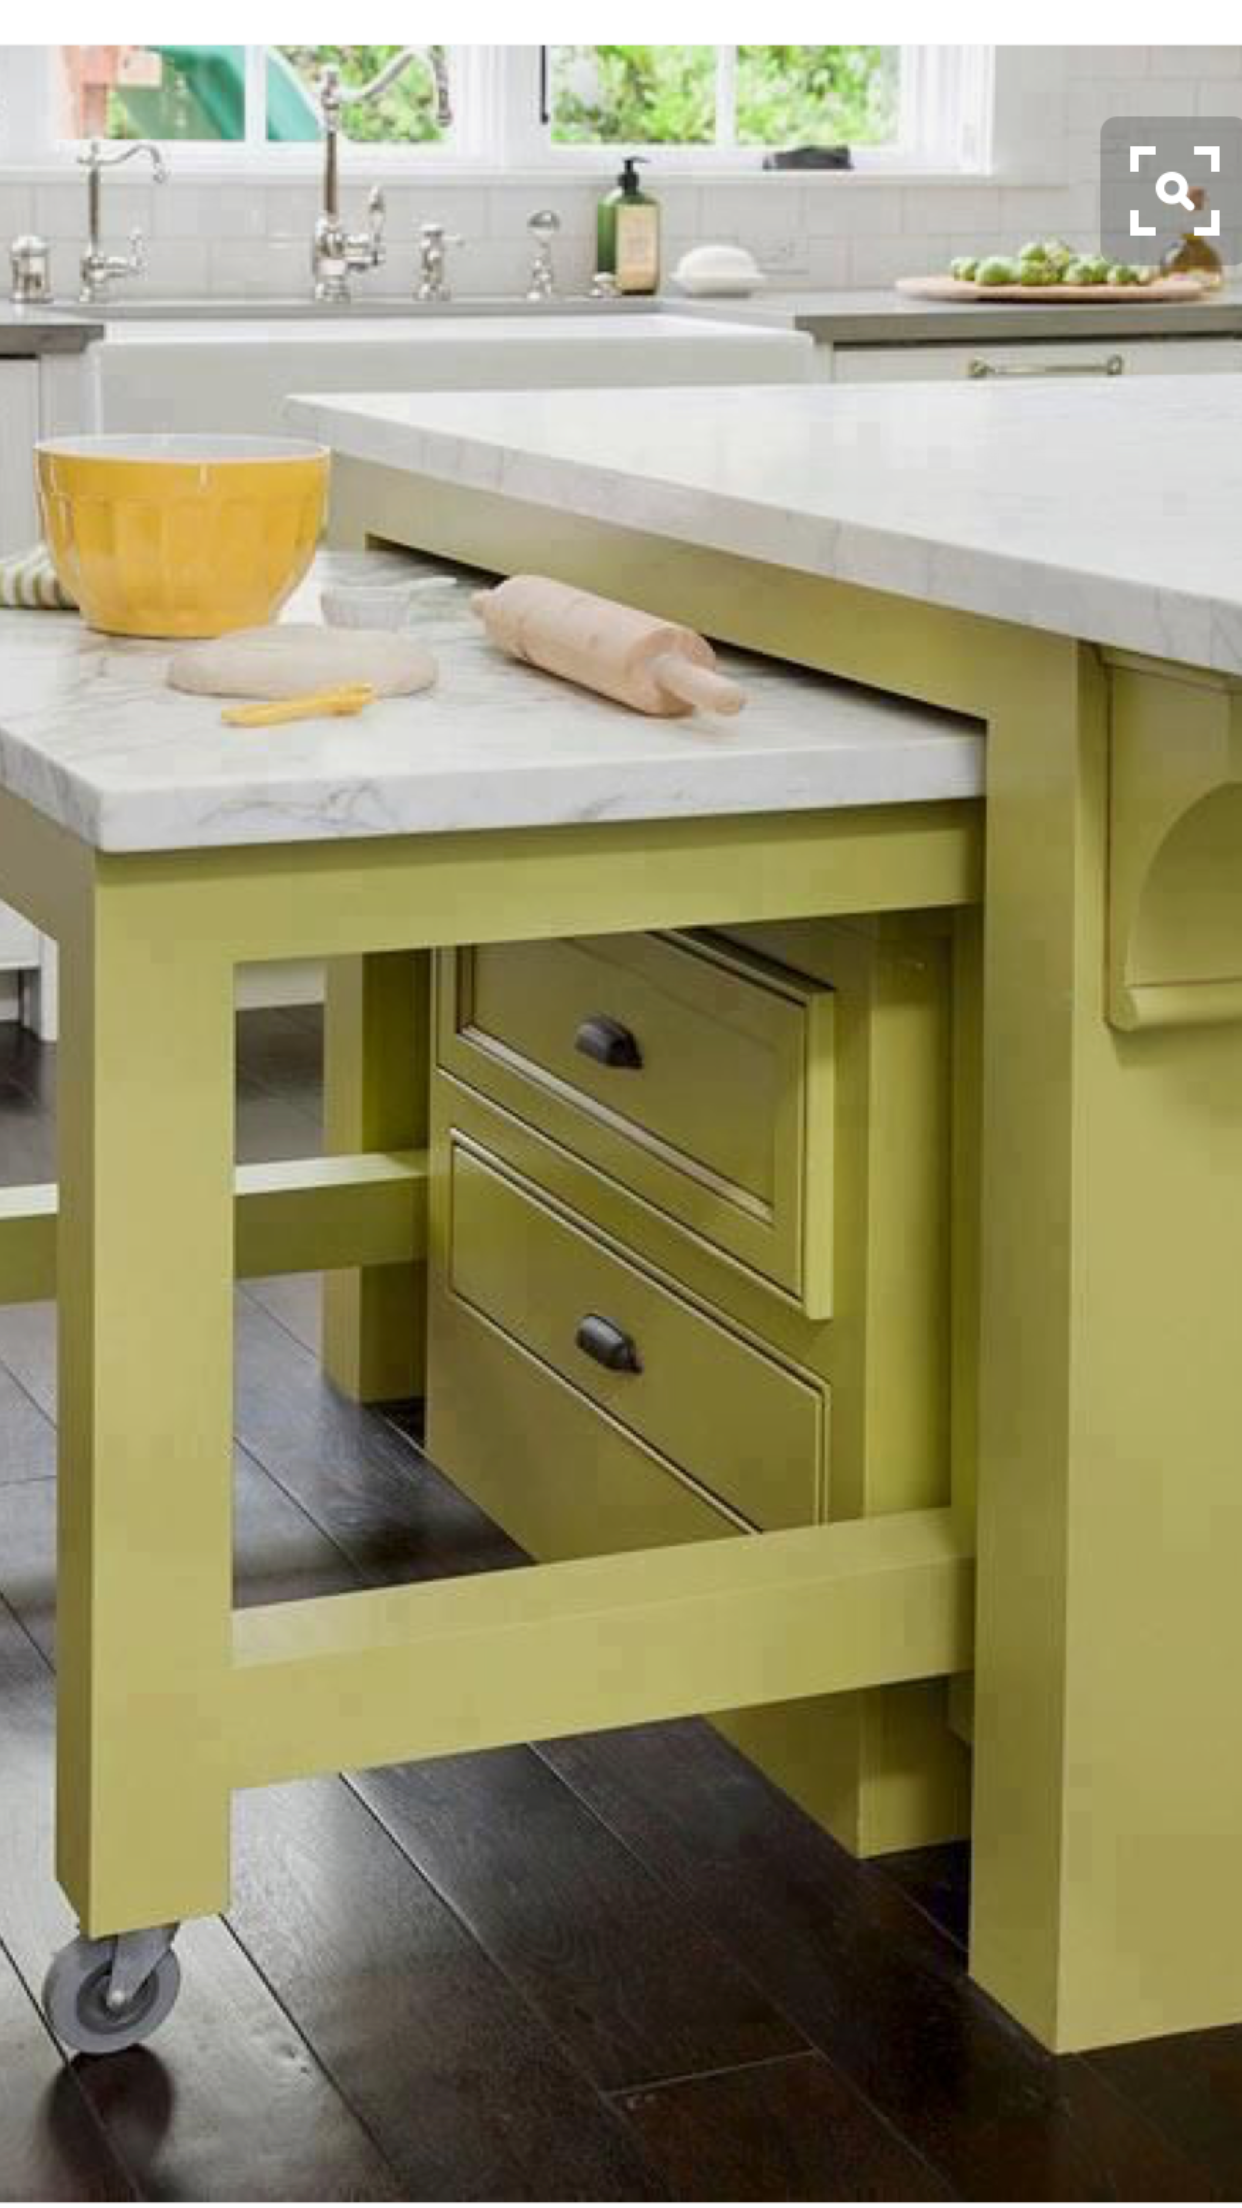 Pull Out Drawers And Table For 2 Extra Work Surfaces.